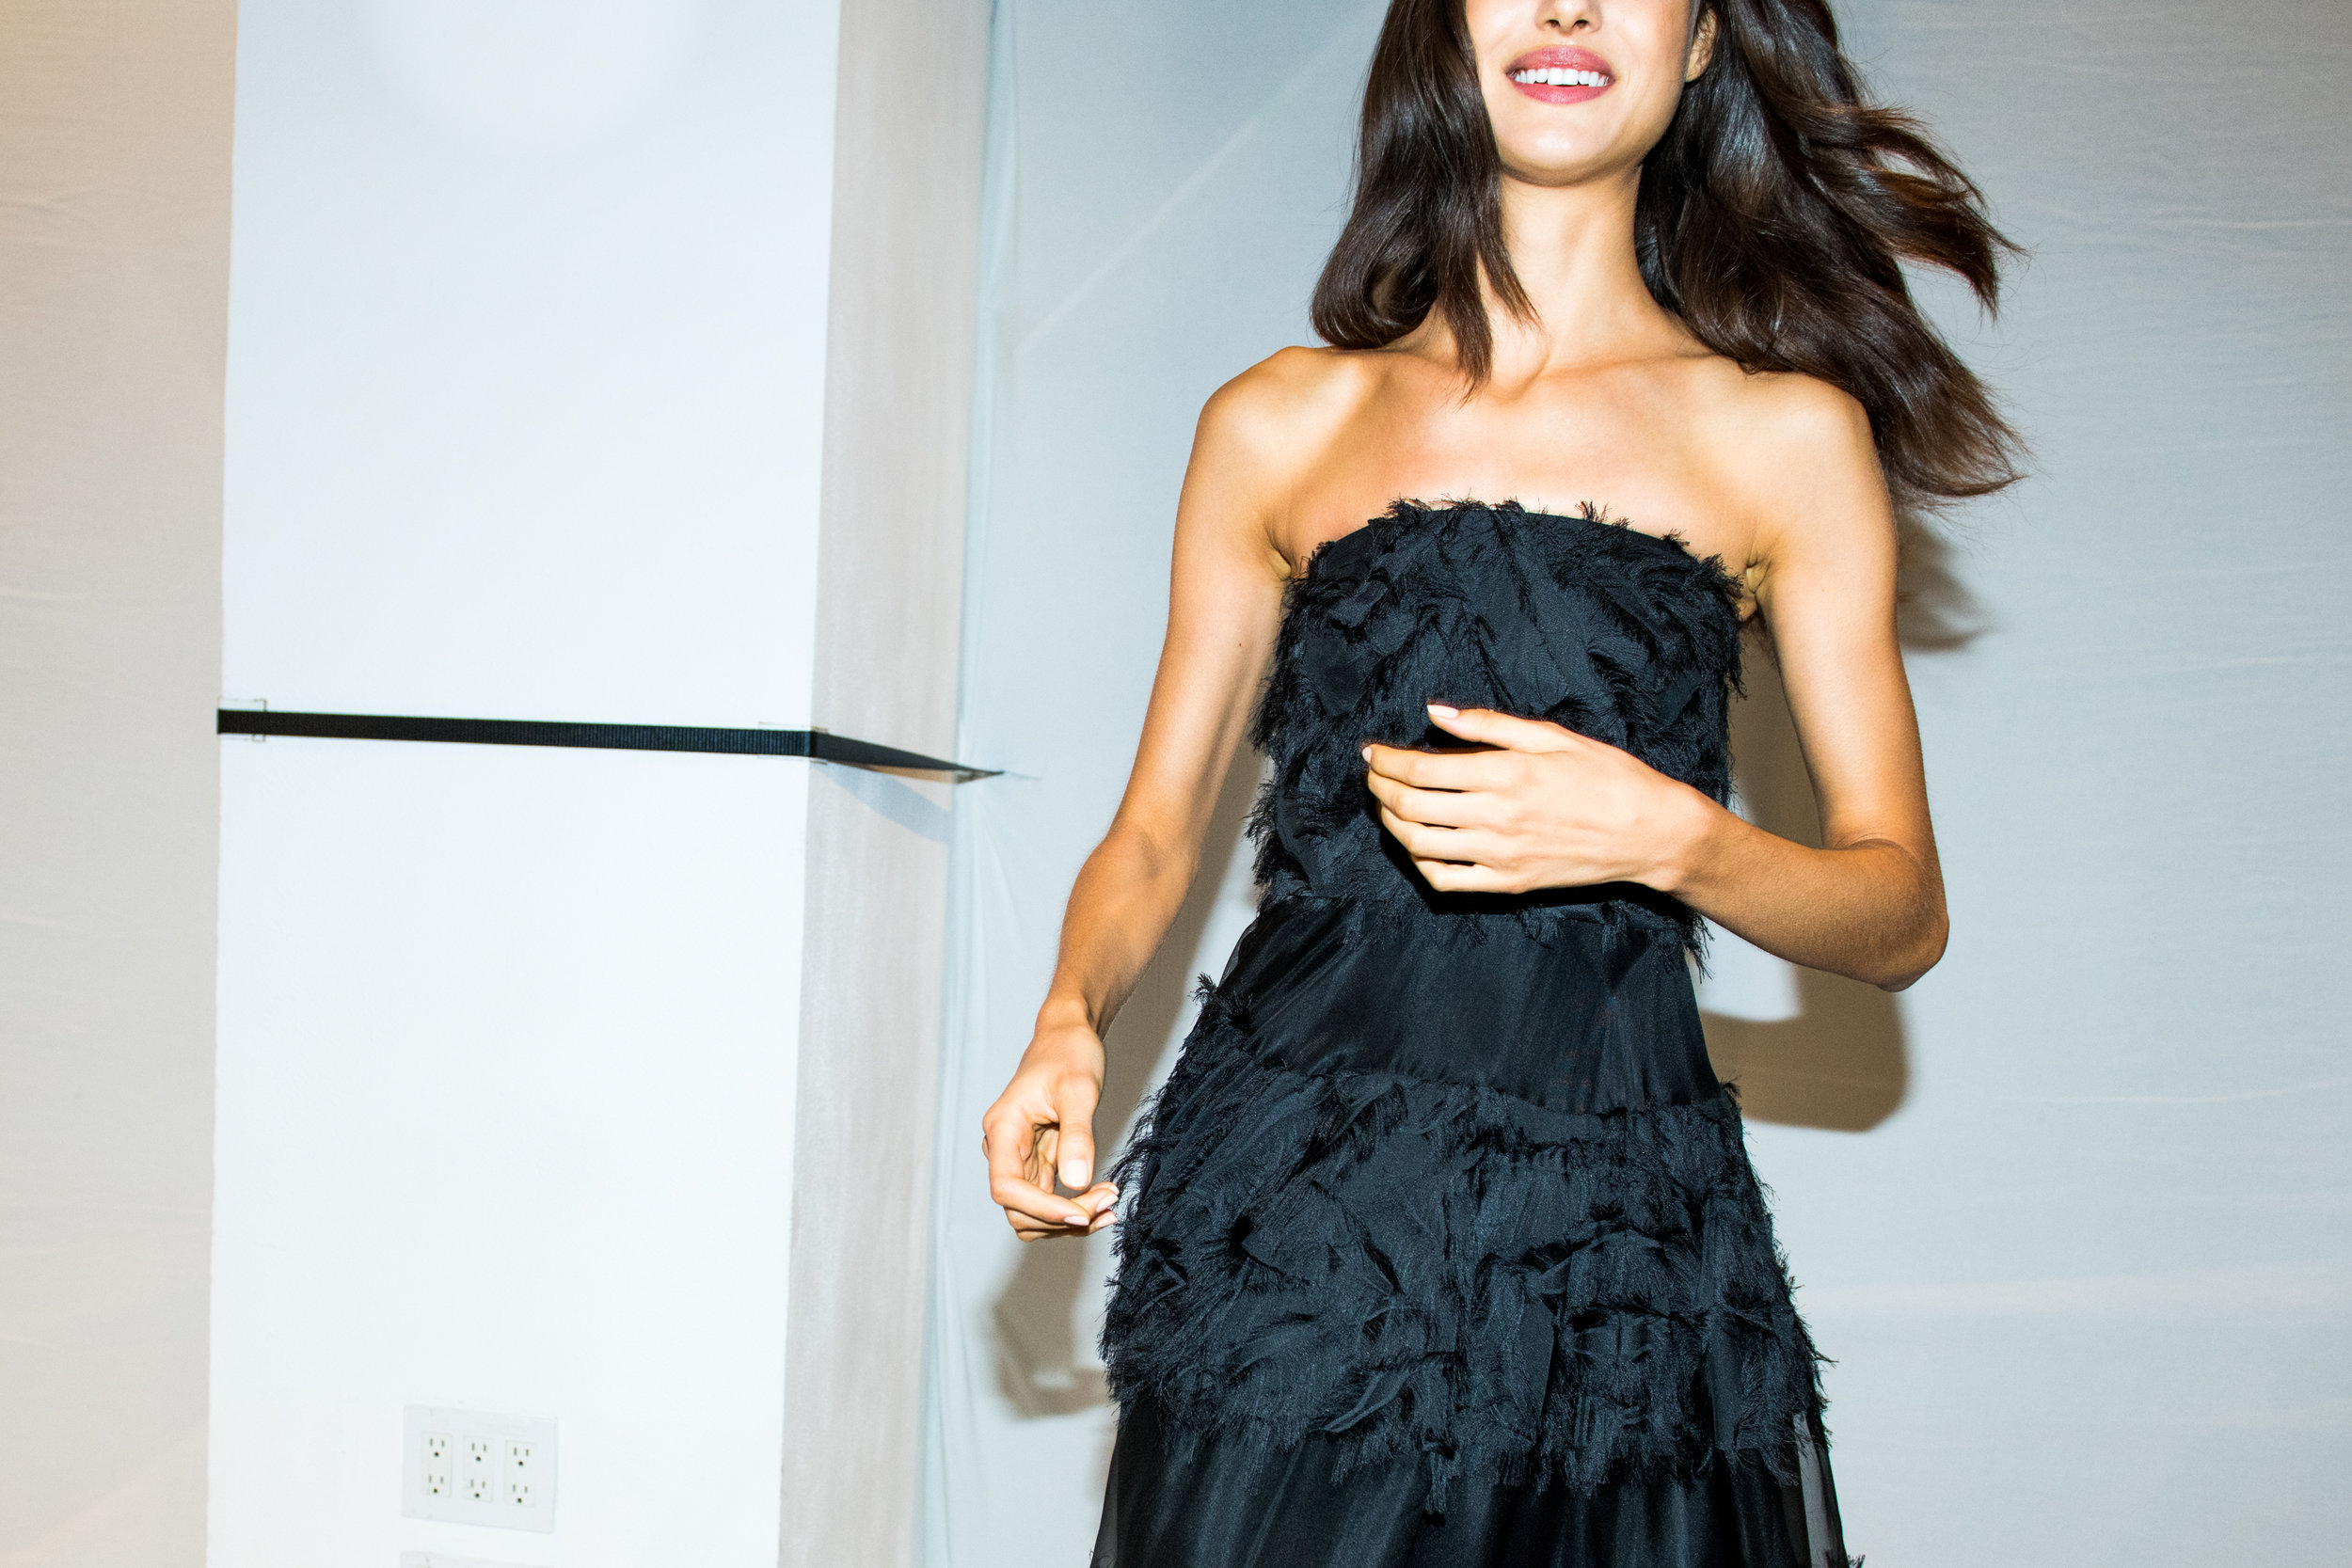 Greenberg_NYFW_NBN_090618-934.jpg